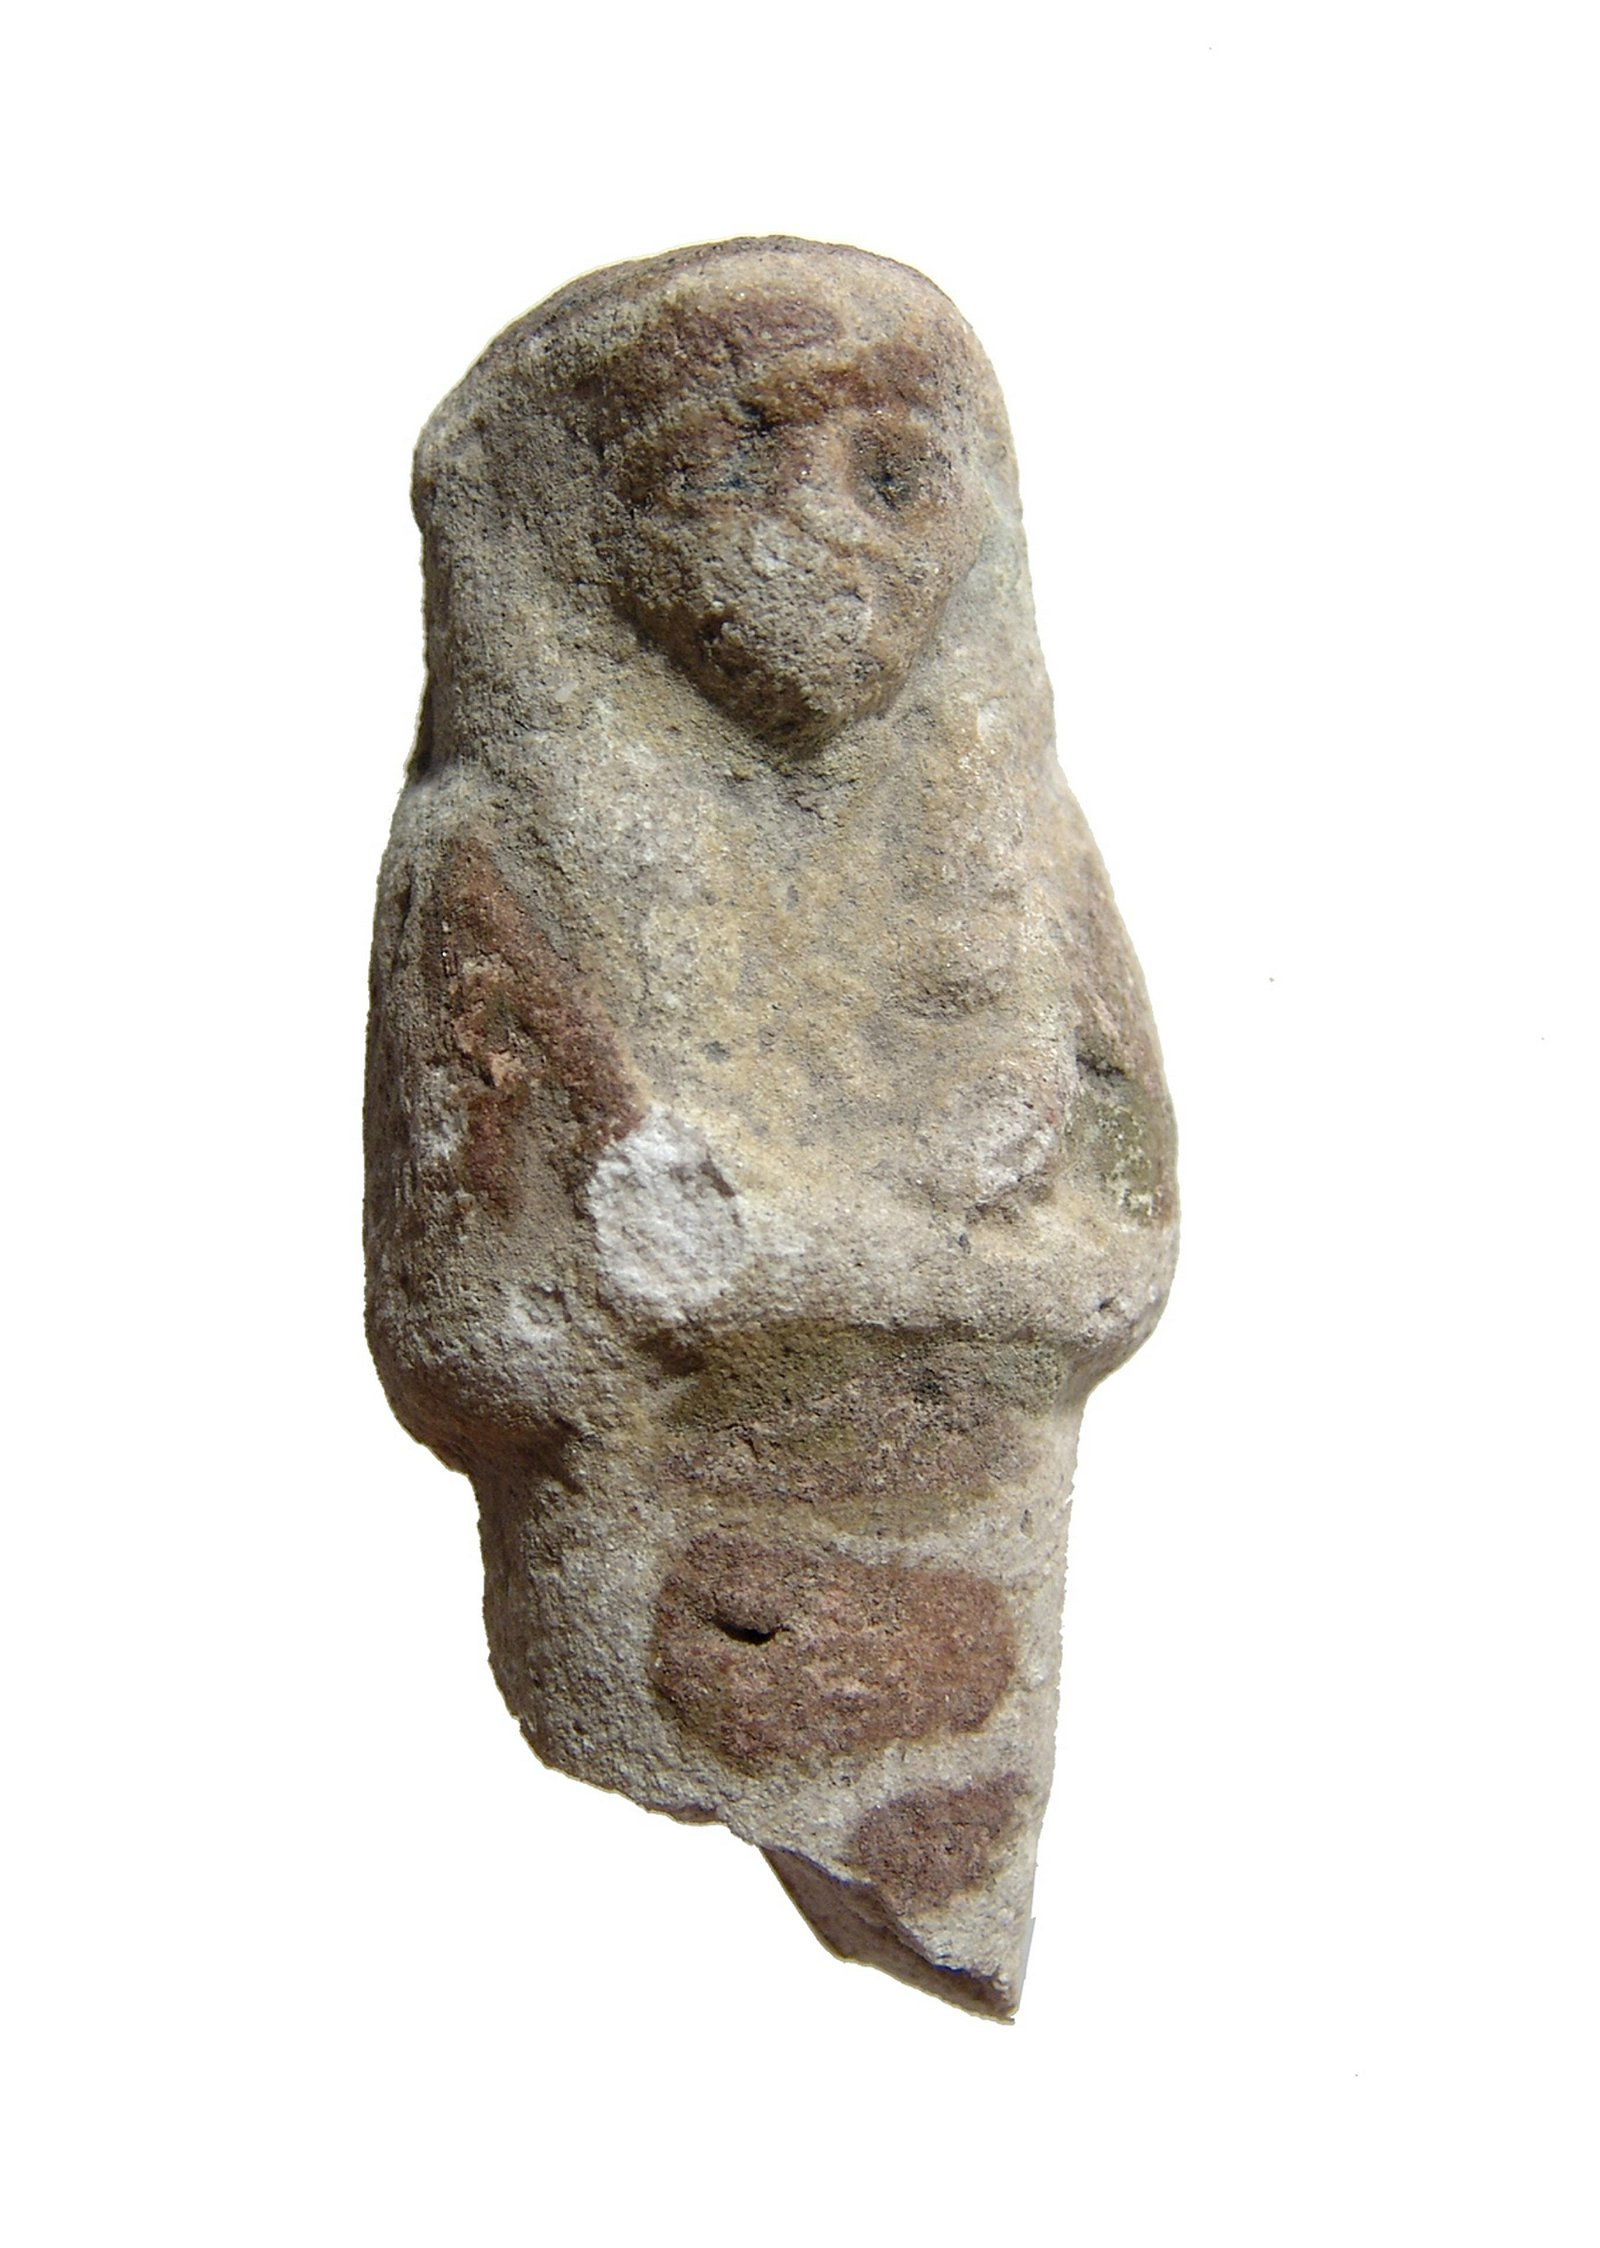 Egyptian glazed ushabti fragment, 3rd Intermediate